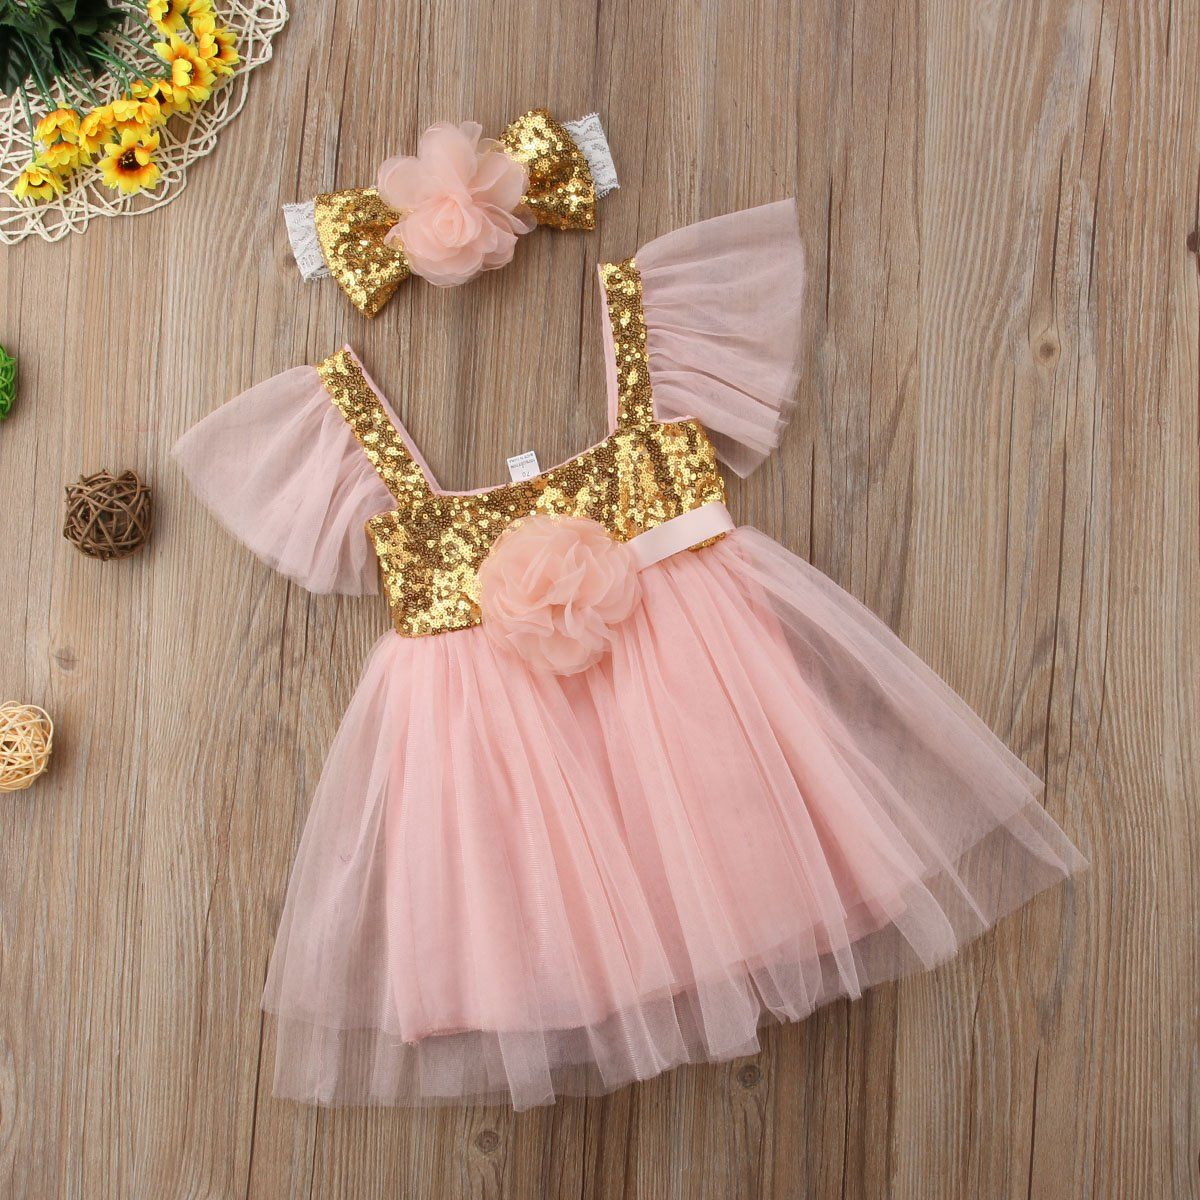 US Toddler Kid Baby Girl Sleeveless Wedding Princess Tulle Dress Sunsuit Outfits